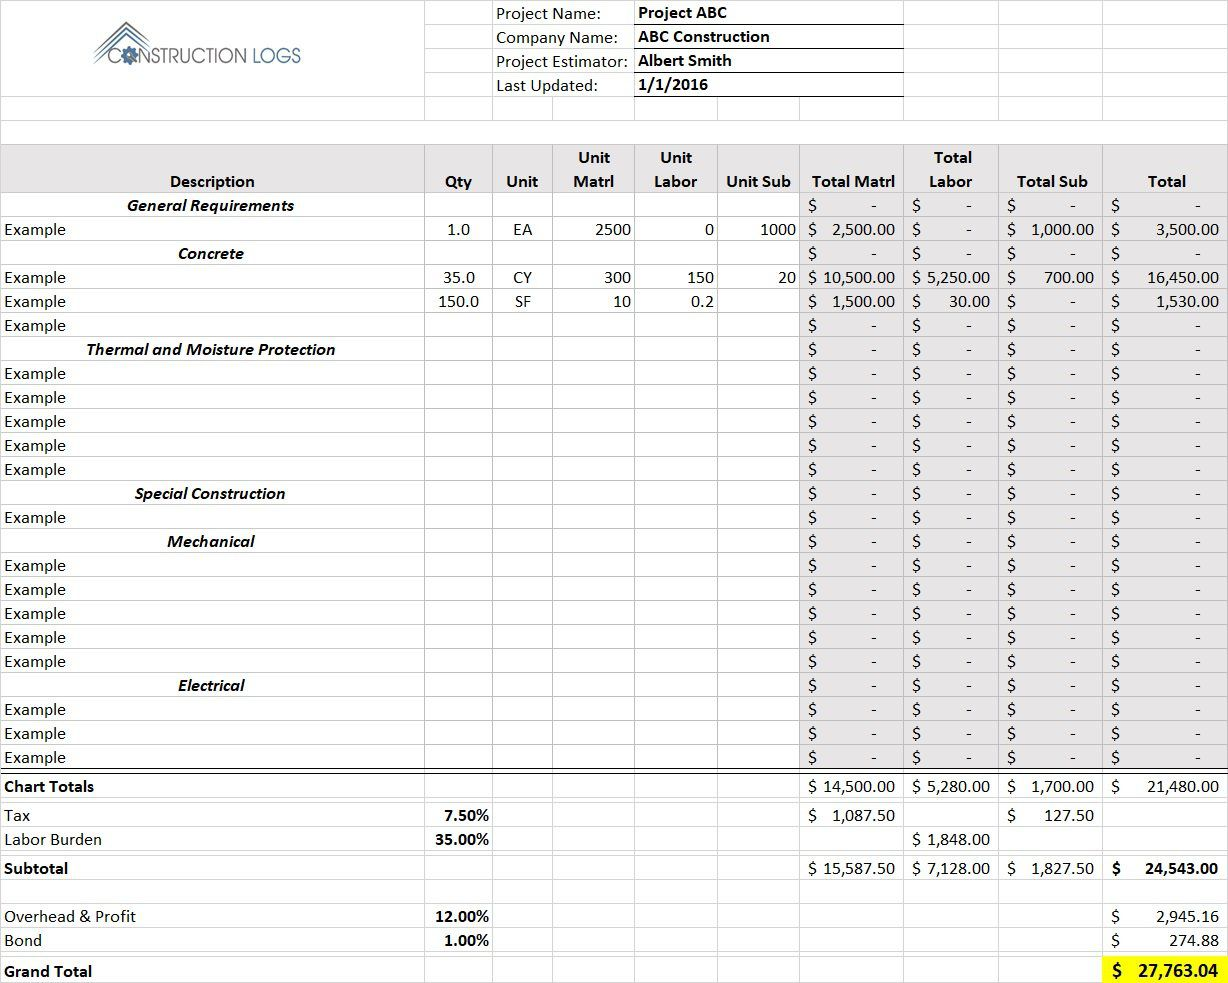 004 Shocking Free Construction Estimate Template For Mac Photo Full